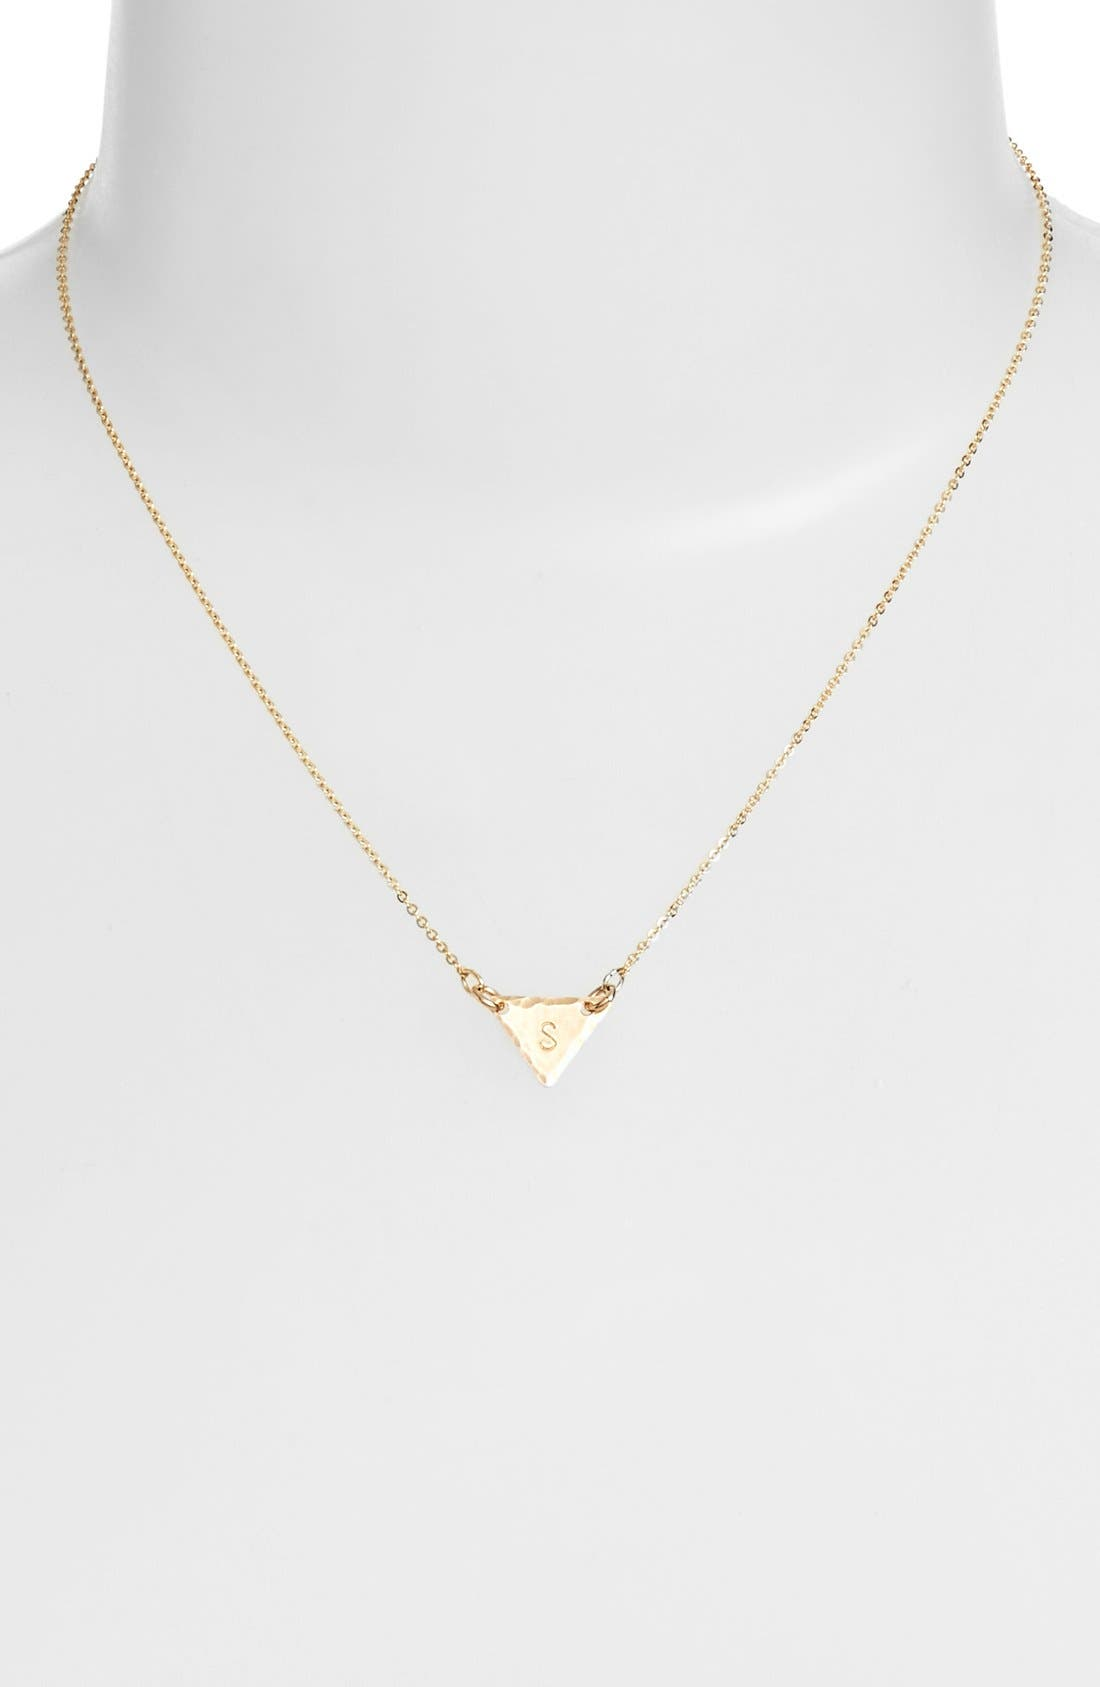 14k-Gold Fill Initial Triangle Necklace,                             Alternate thumbnail 45, color,